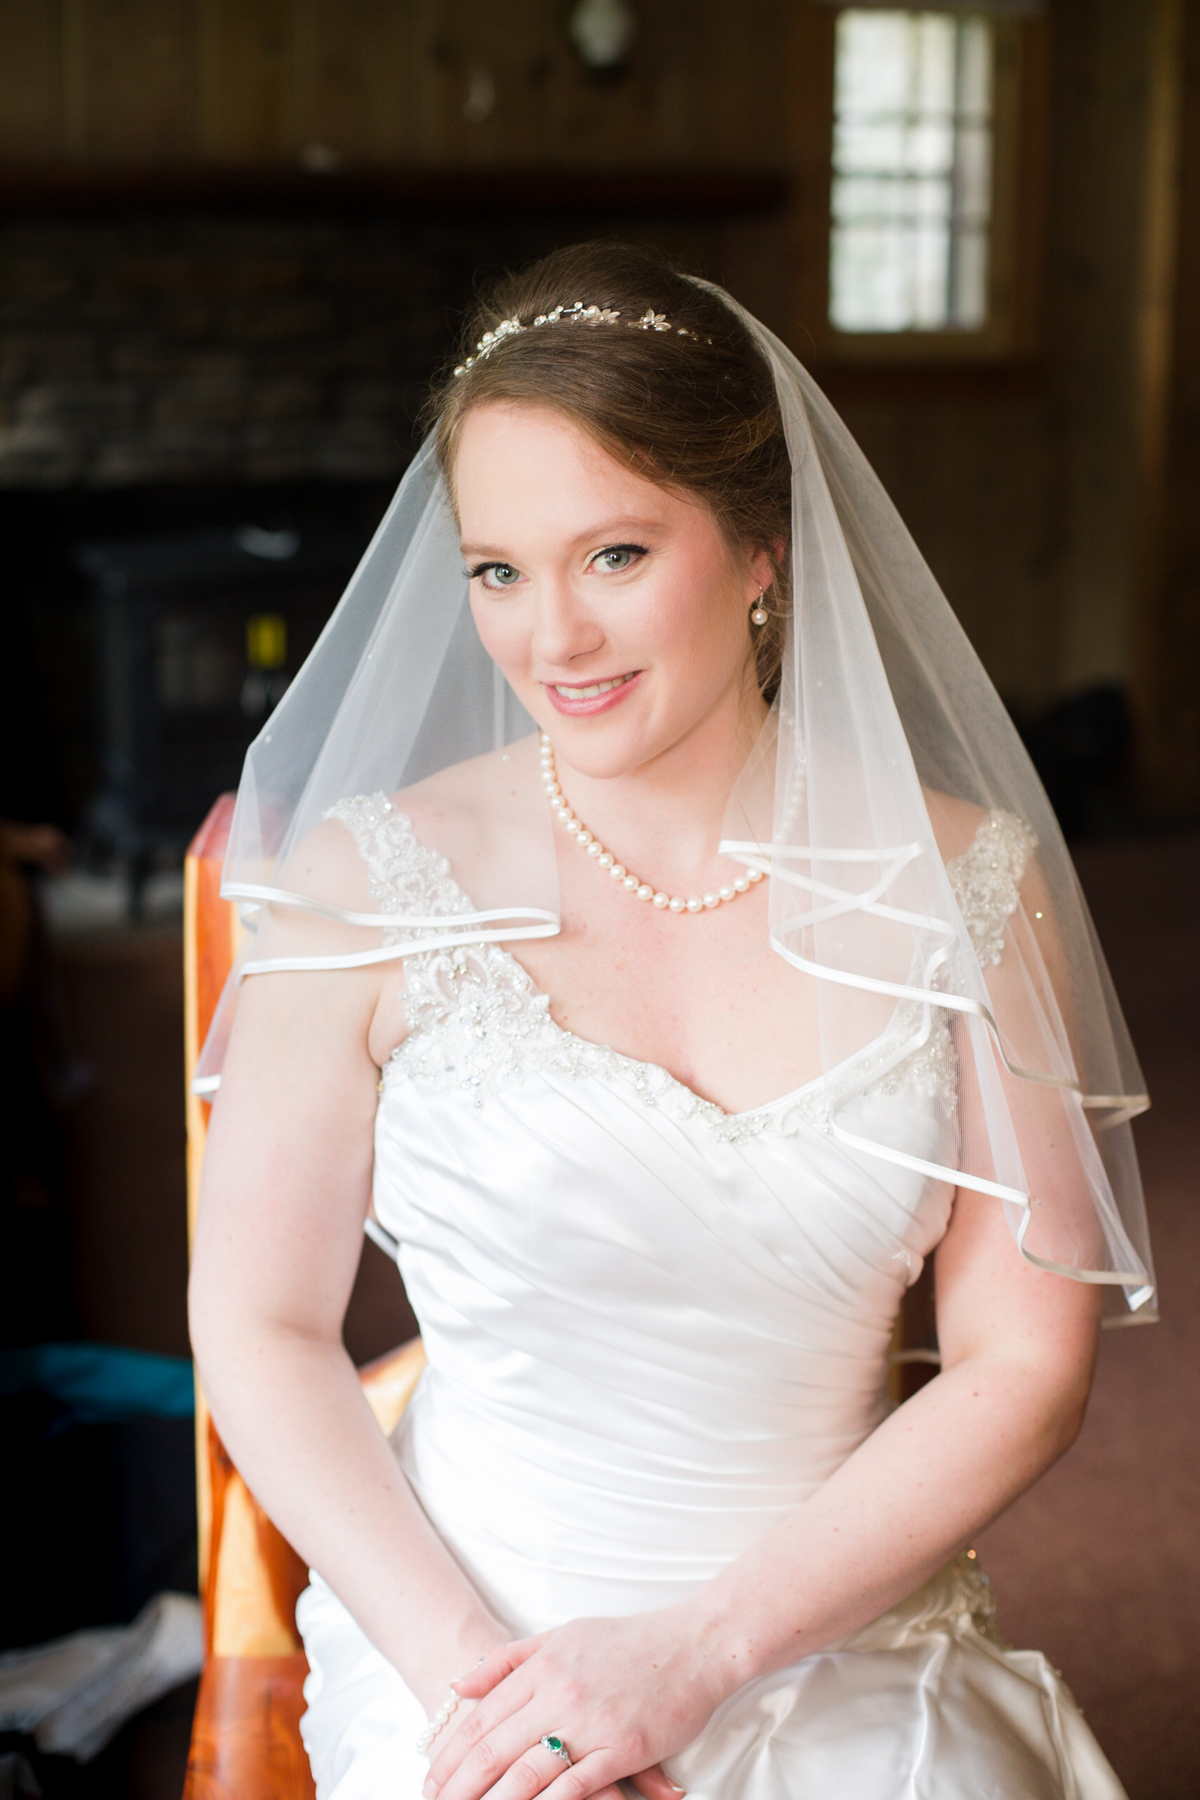 bride-on-wedding-day-portrait.jpg